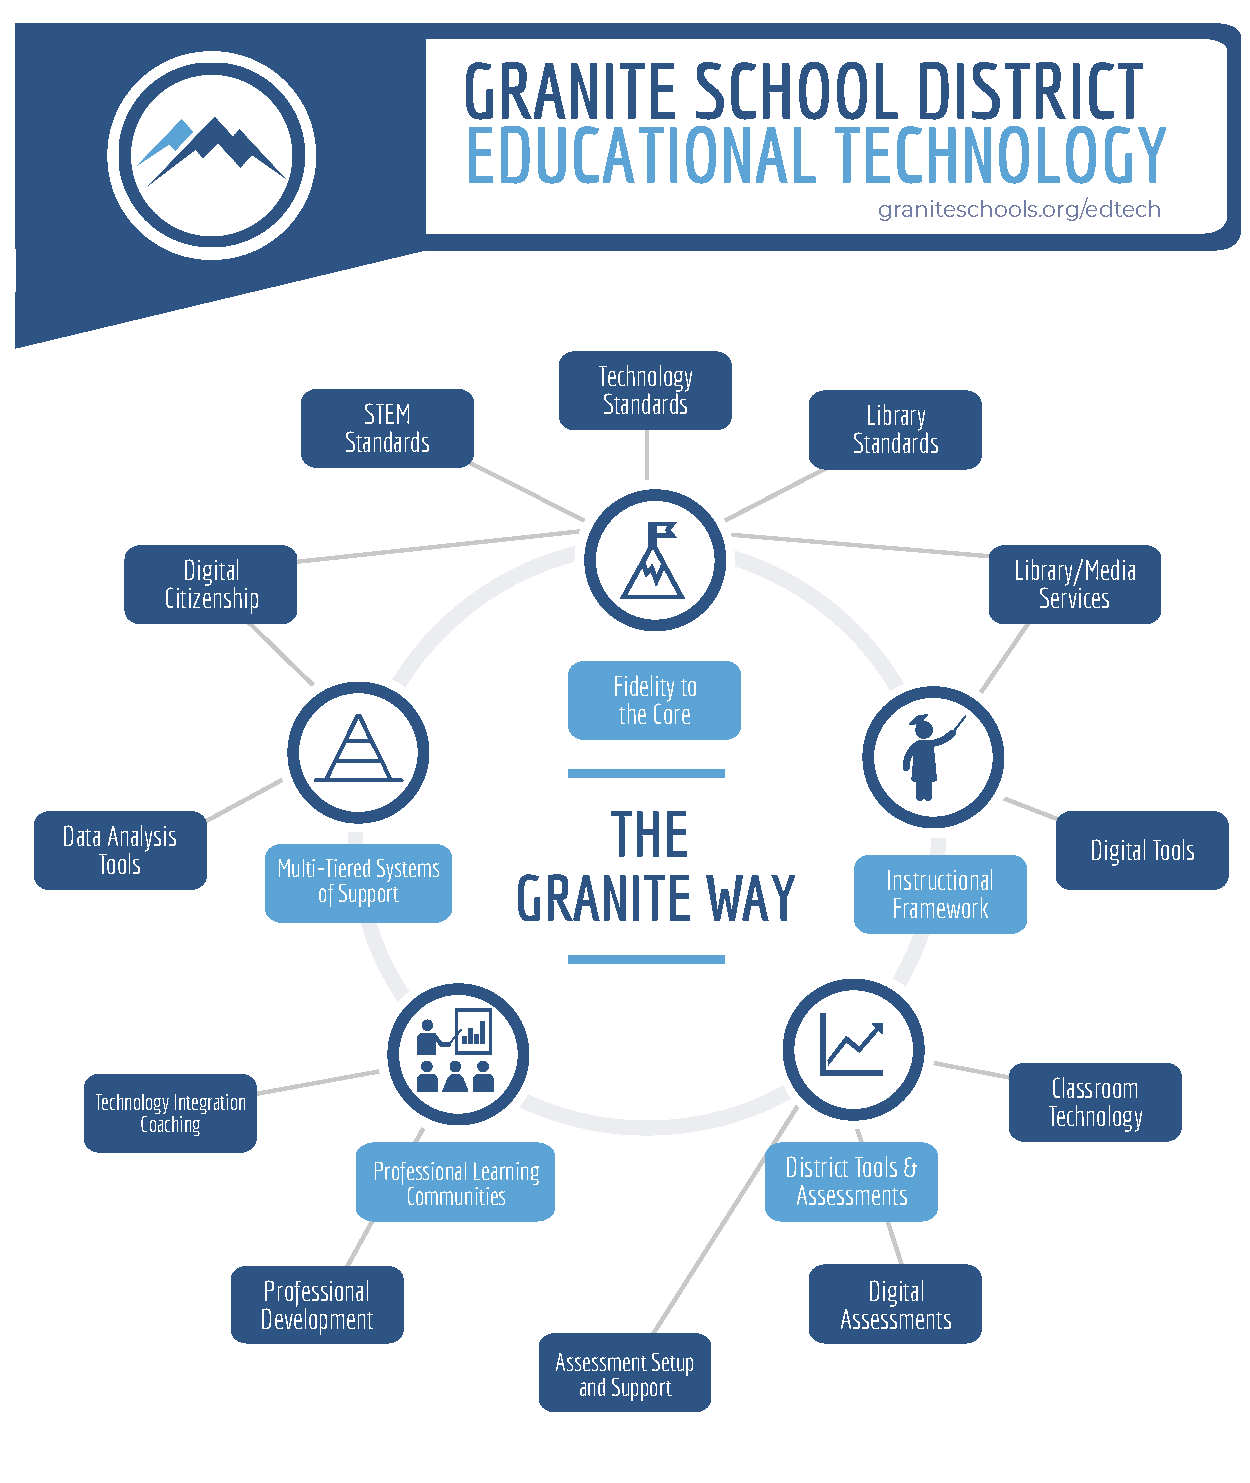 Granite Educational Technology 2018 Infographic Presentation